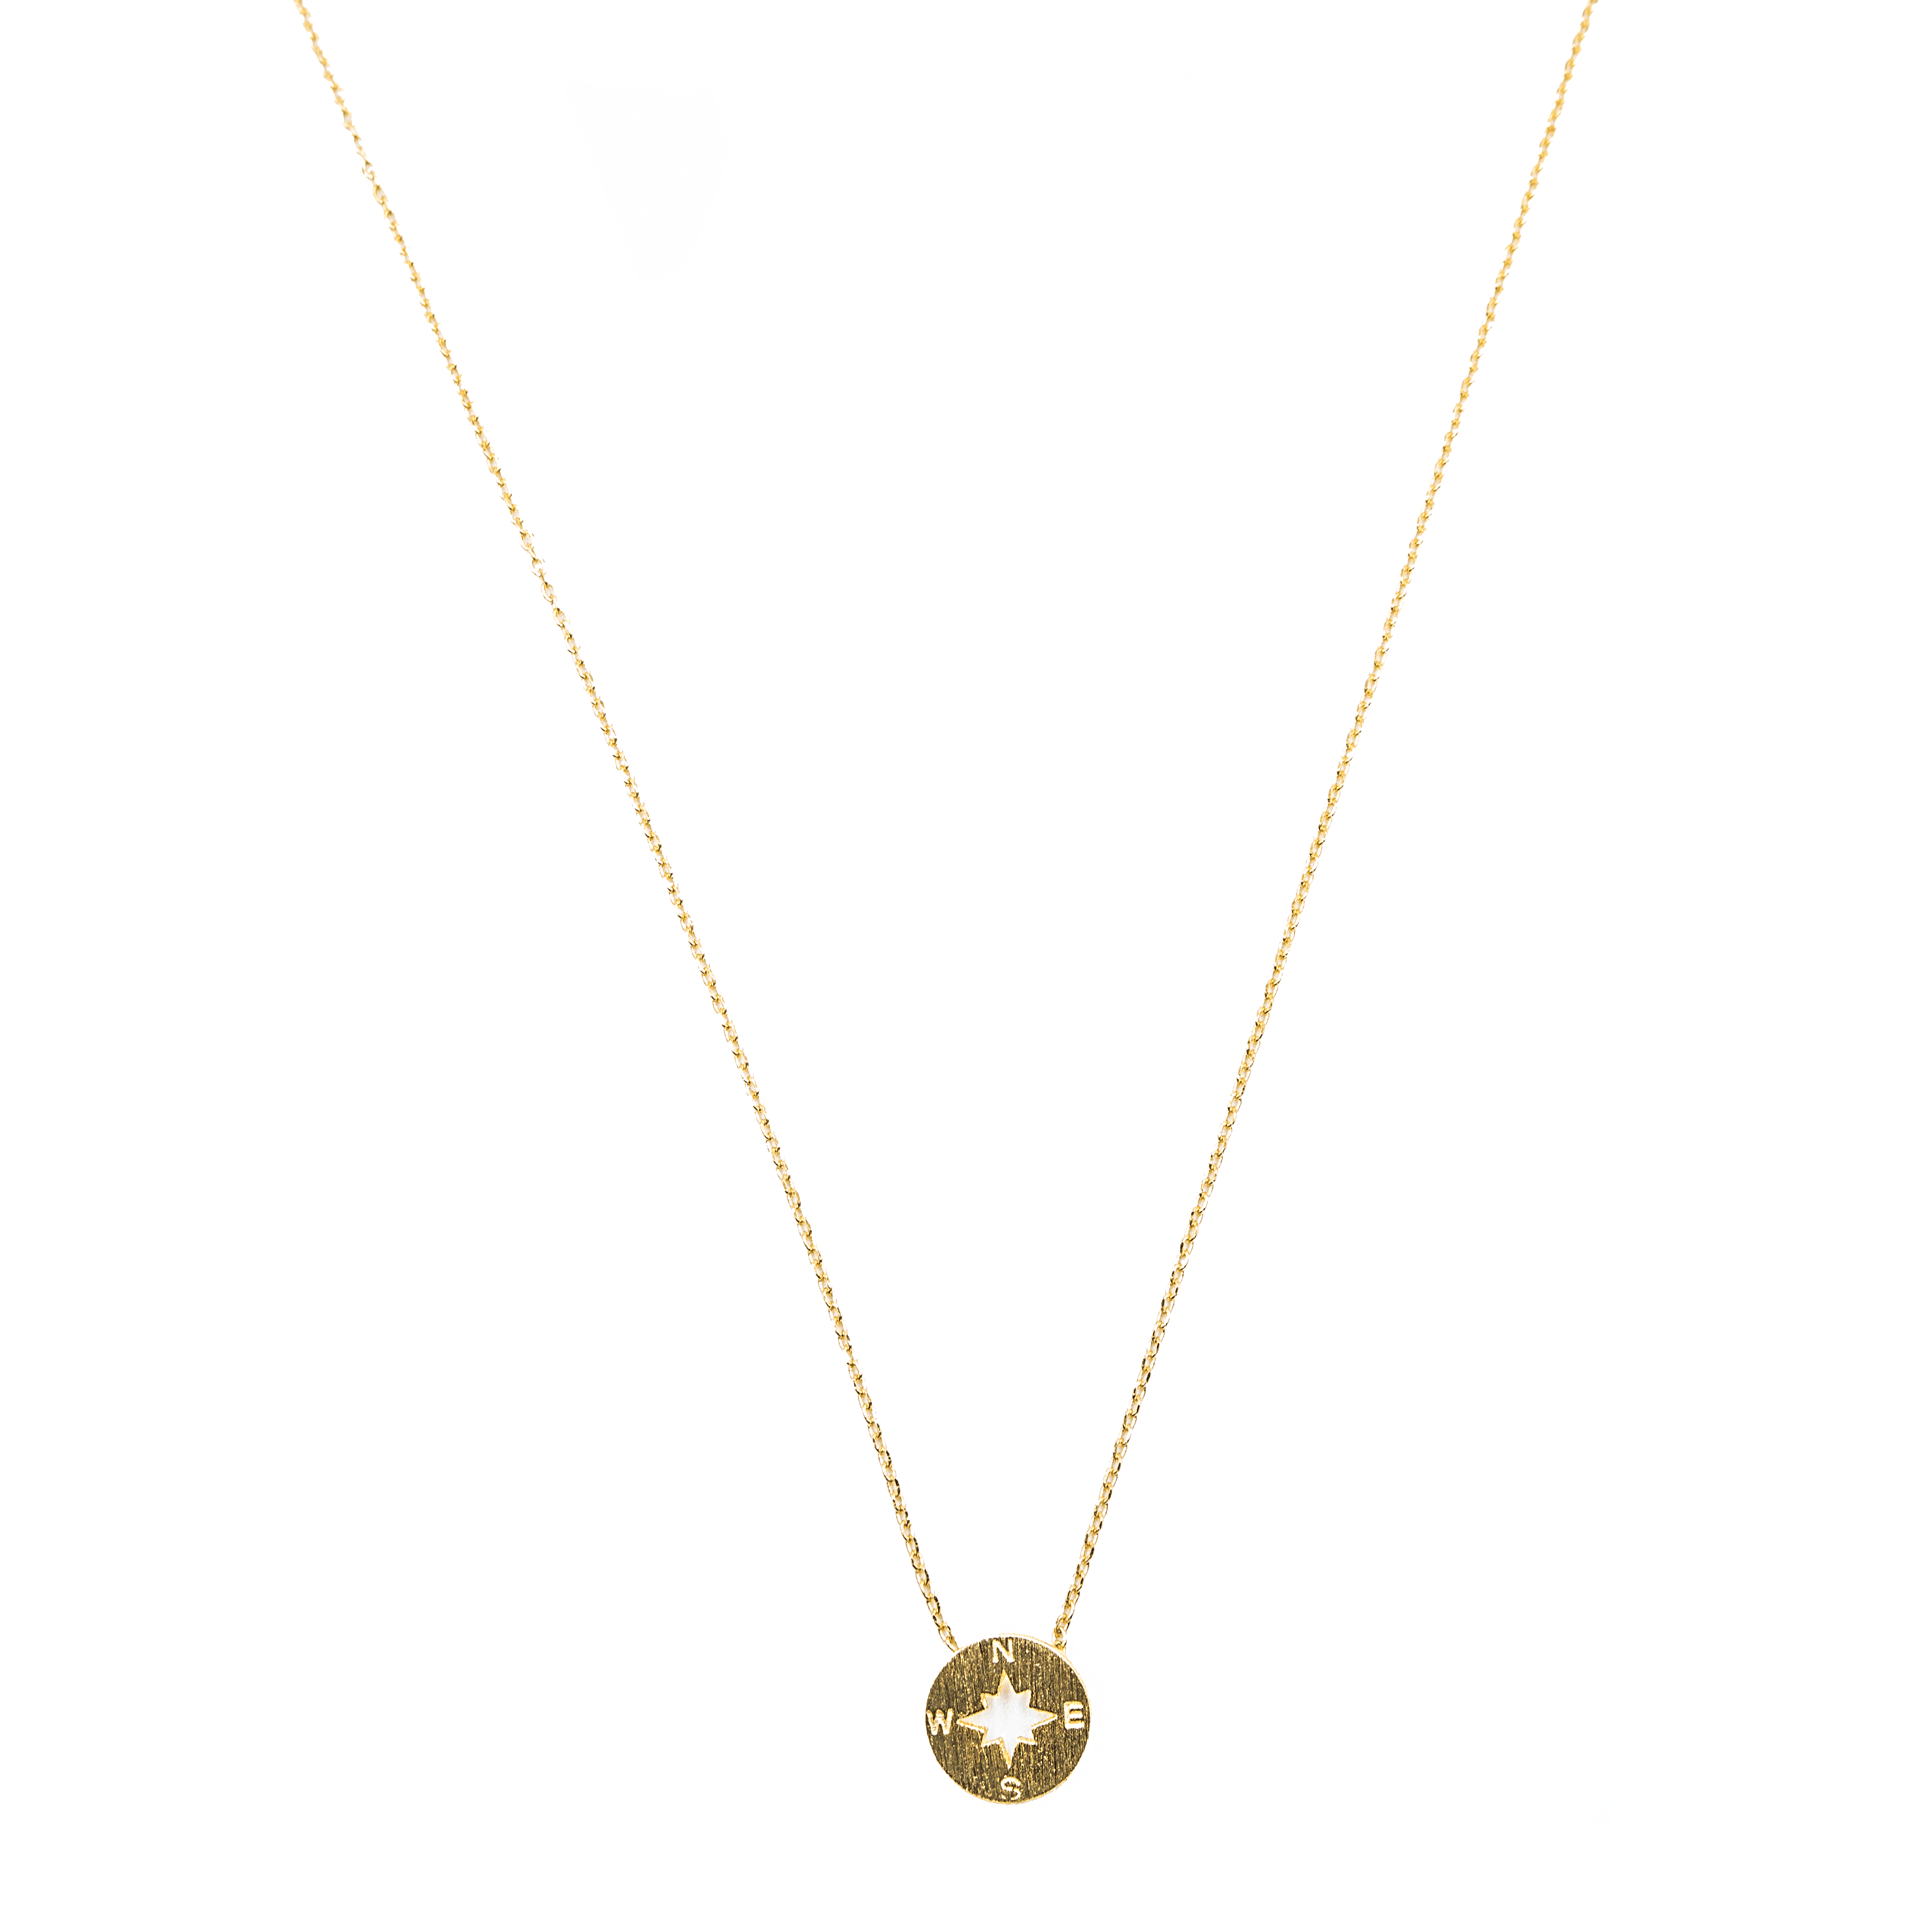 Gold Metal Compass Pendant Necklace - Arlo and Arrows